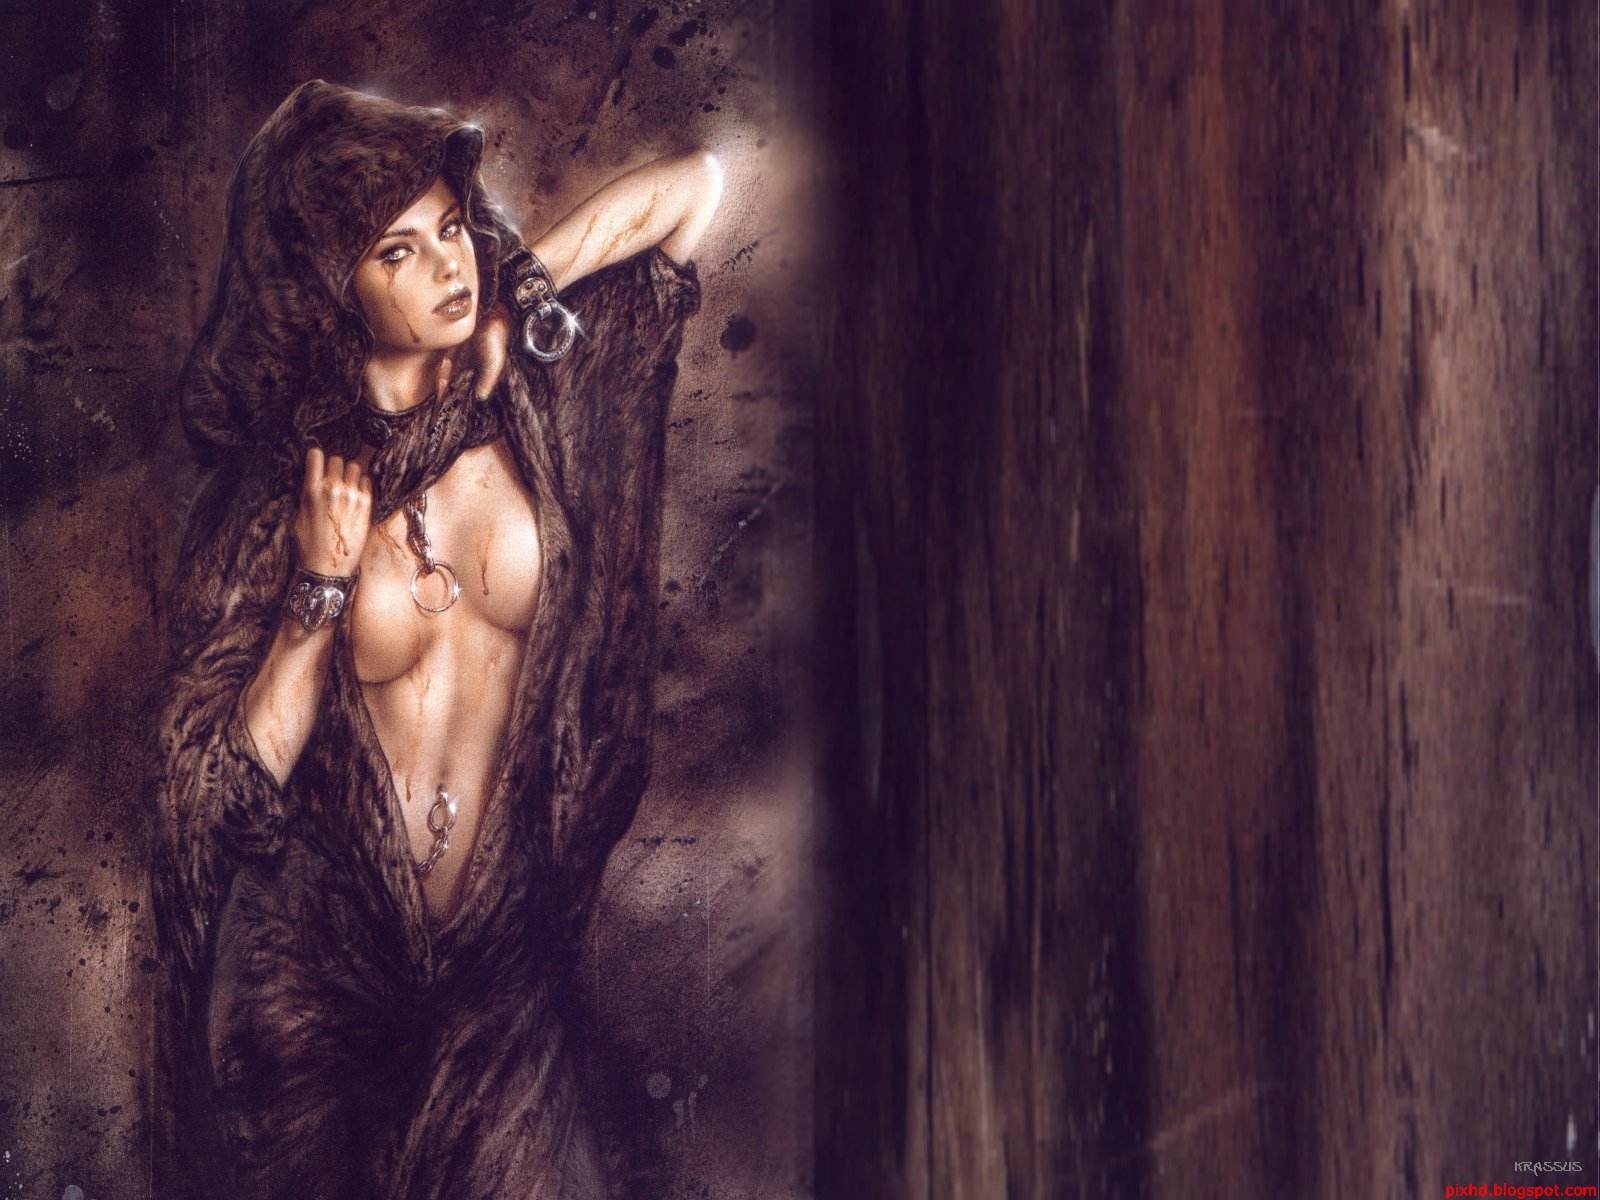 LUIS ROYO OFFICIAL WEBSITE